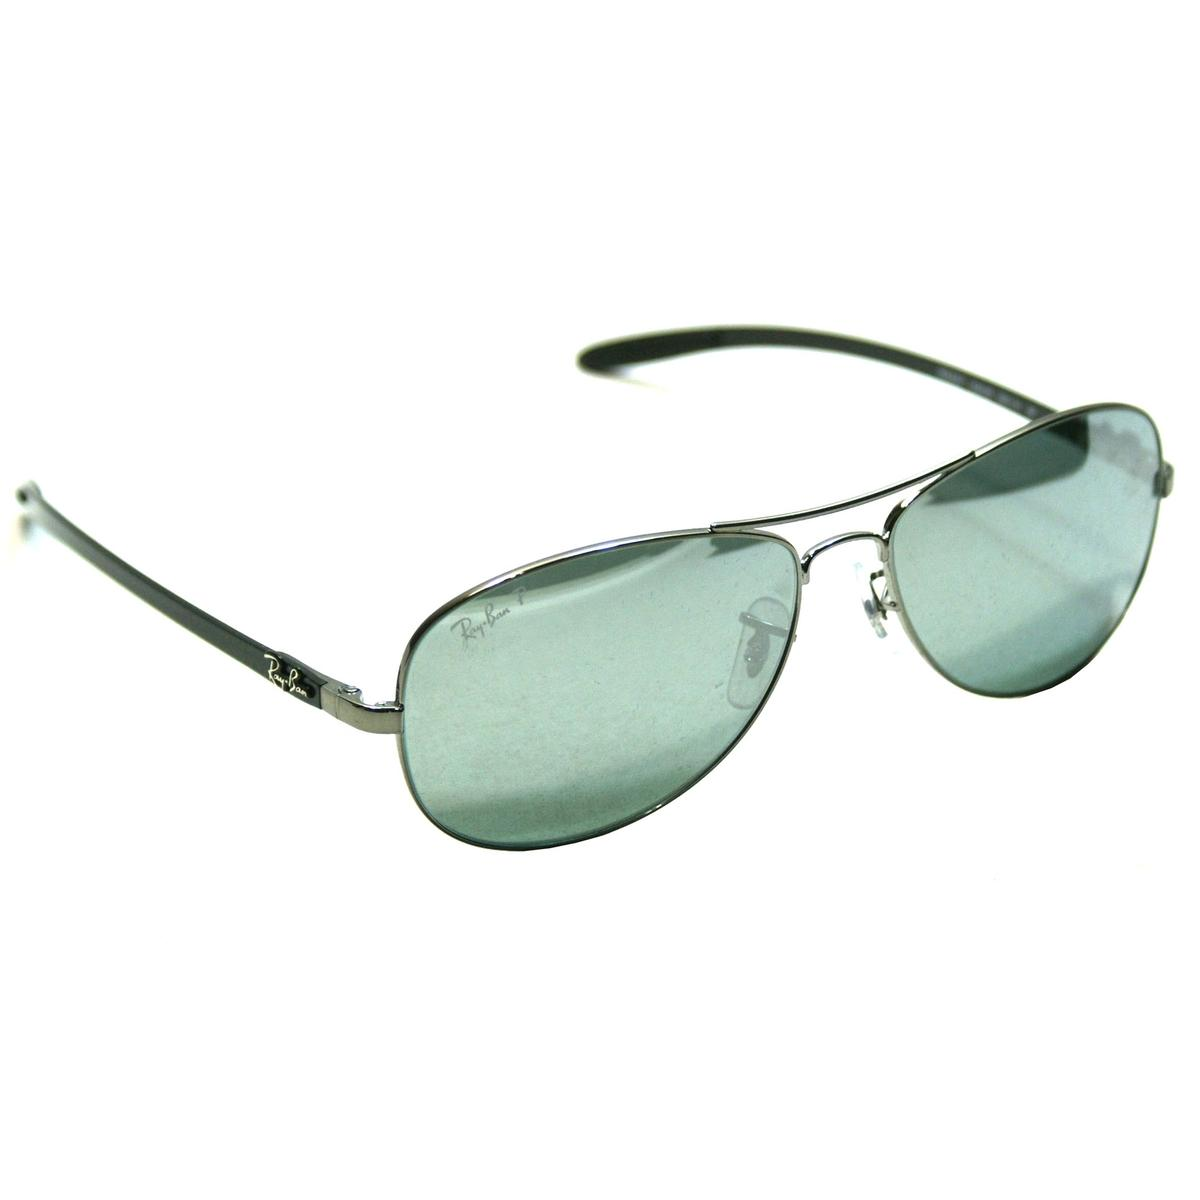 68848243d4 Ray-ban Aviator Polarized Sunglasses Silver 59